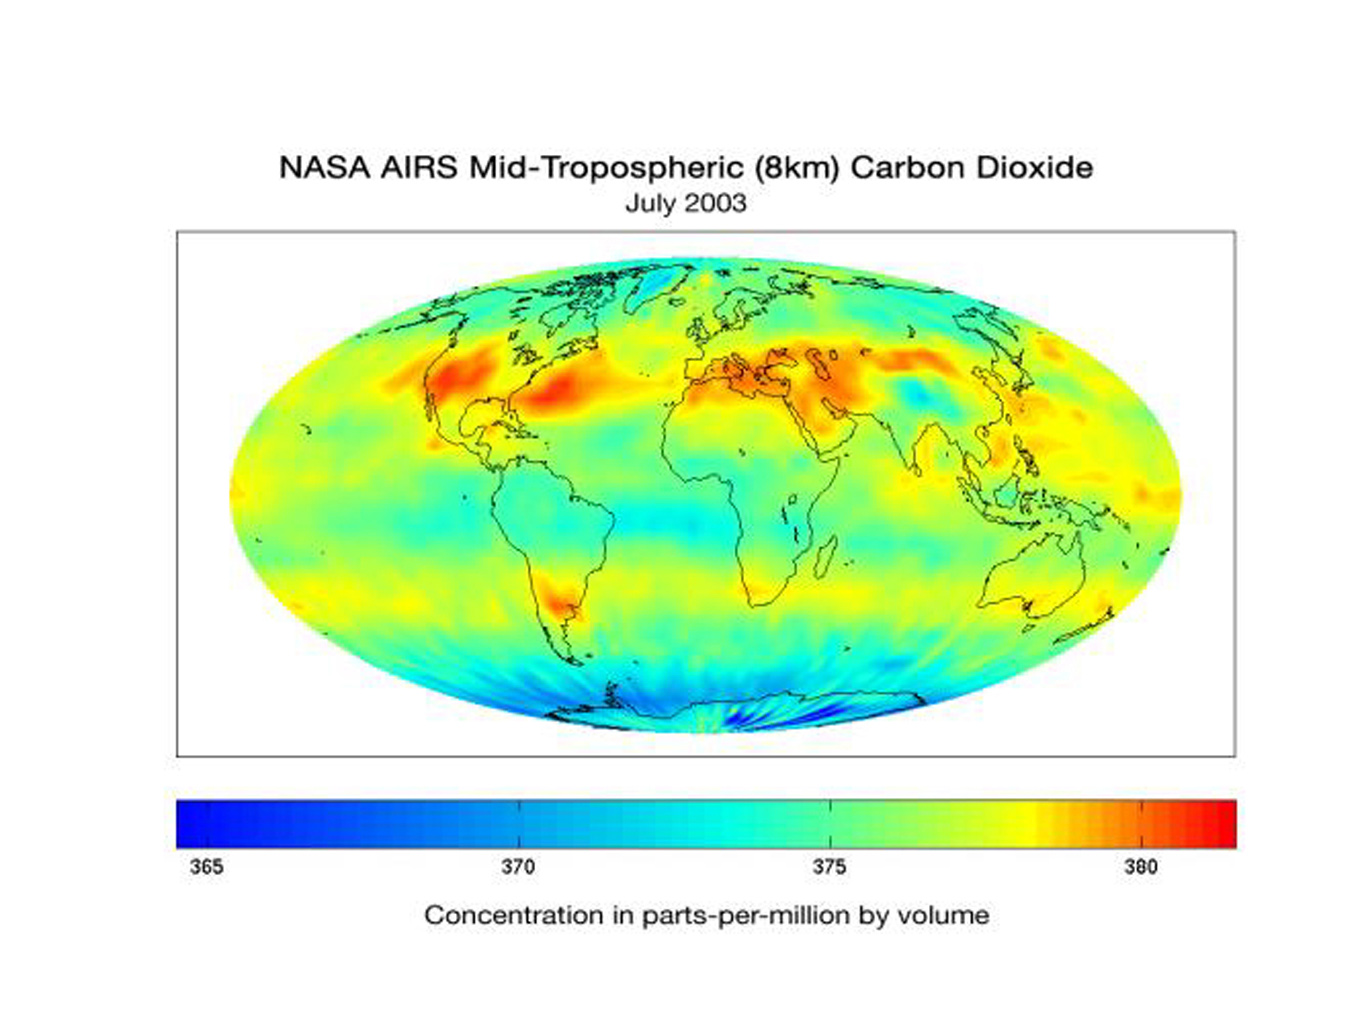 The Atmospheric Infrared Sounder (AIRS) instrument onboard NASA's Aqua spacecraft is also being used by scientists to observe atmospheric carbon dioxide.